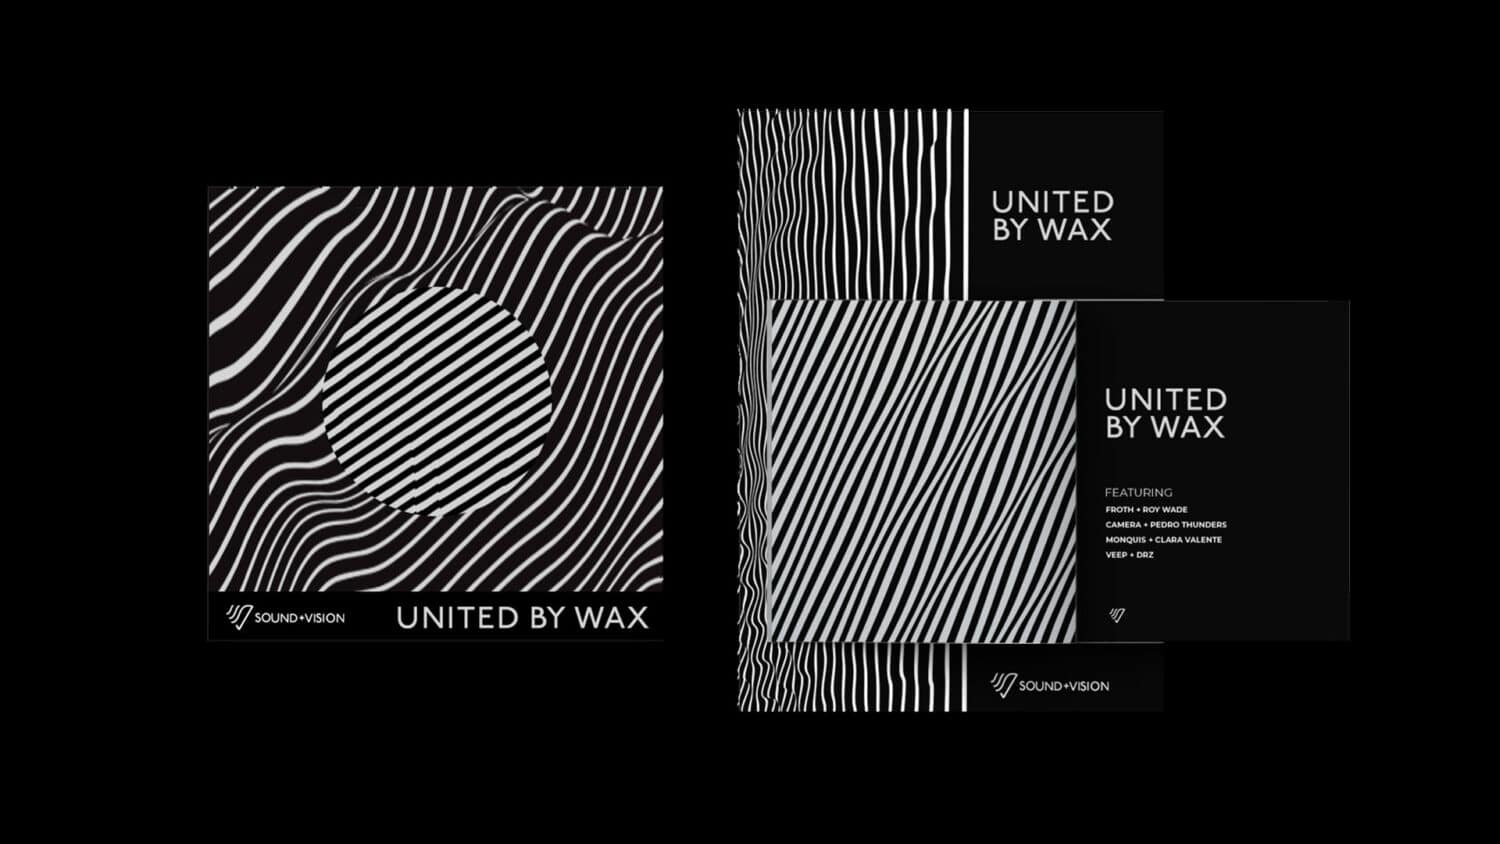 united By wax boxset